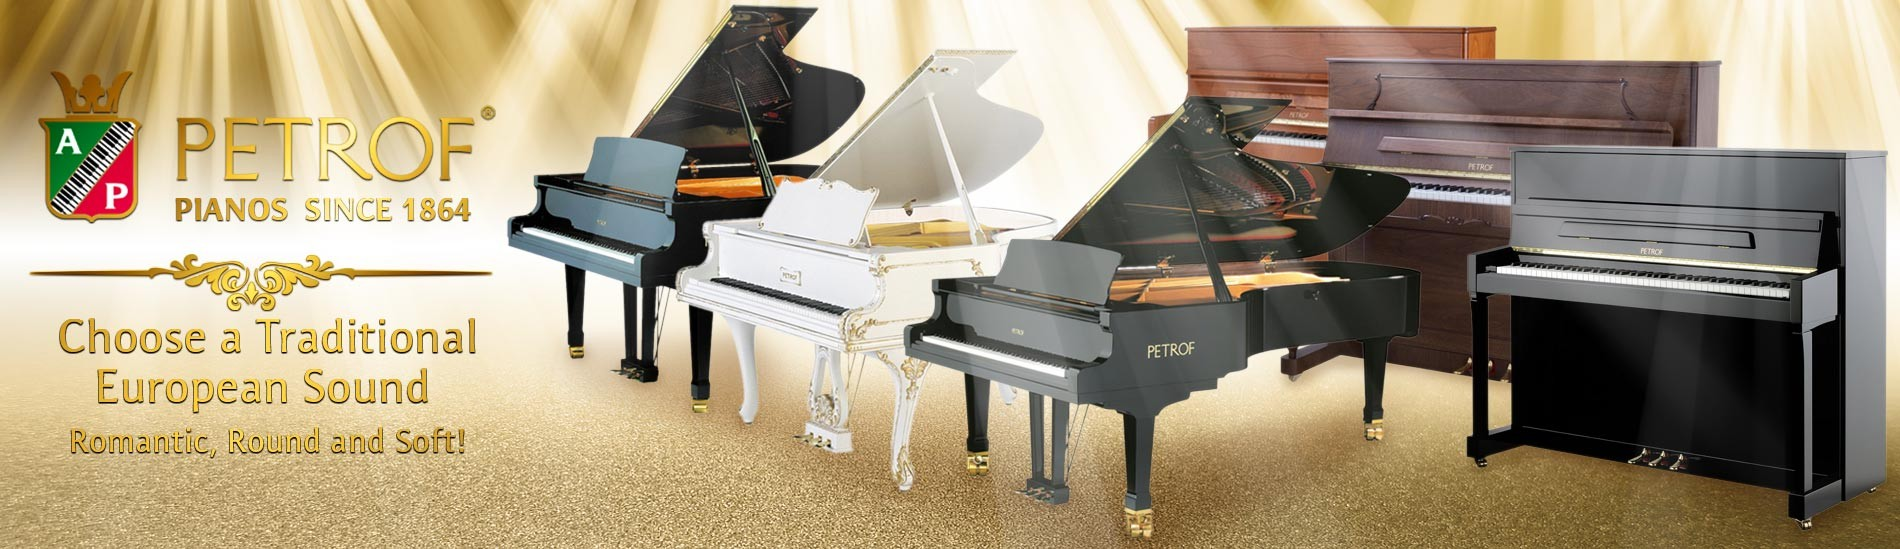 Petrof - Pianos since 1864 - Choose a Traditional European Sound. Open, Round and Romantic!